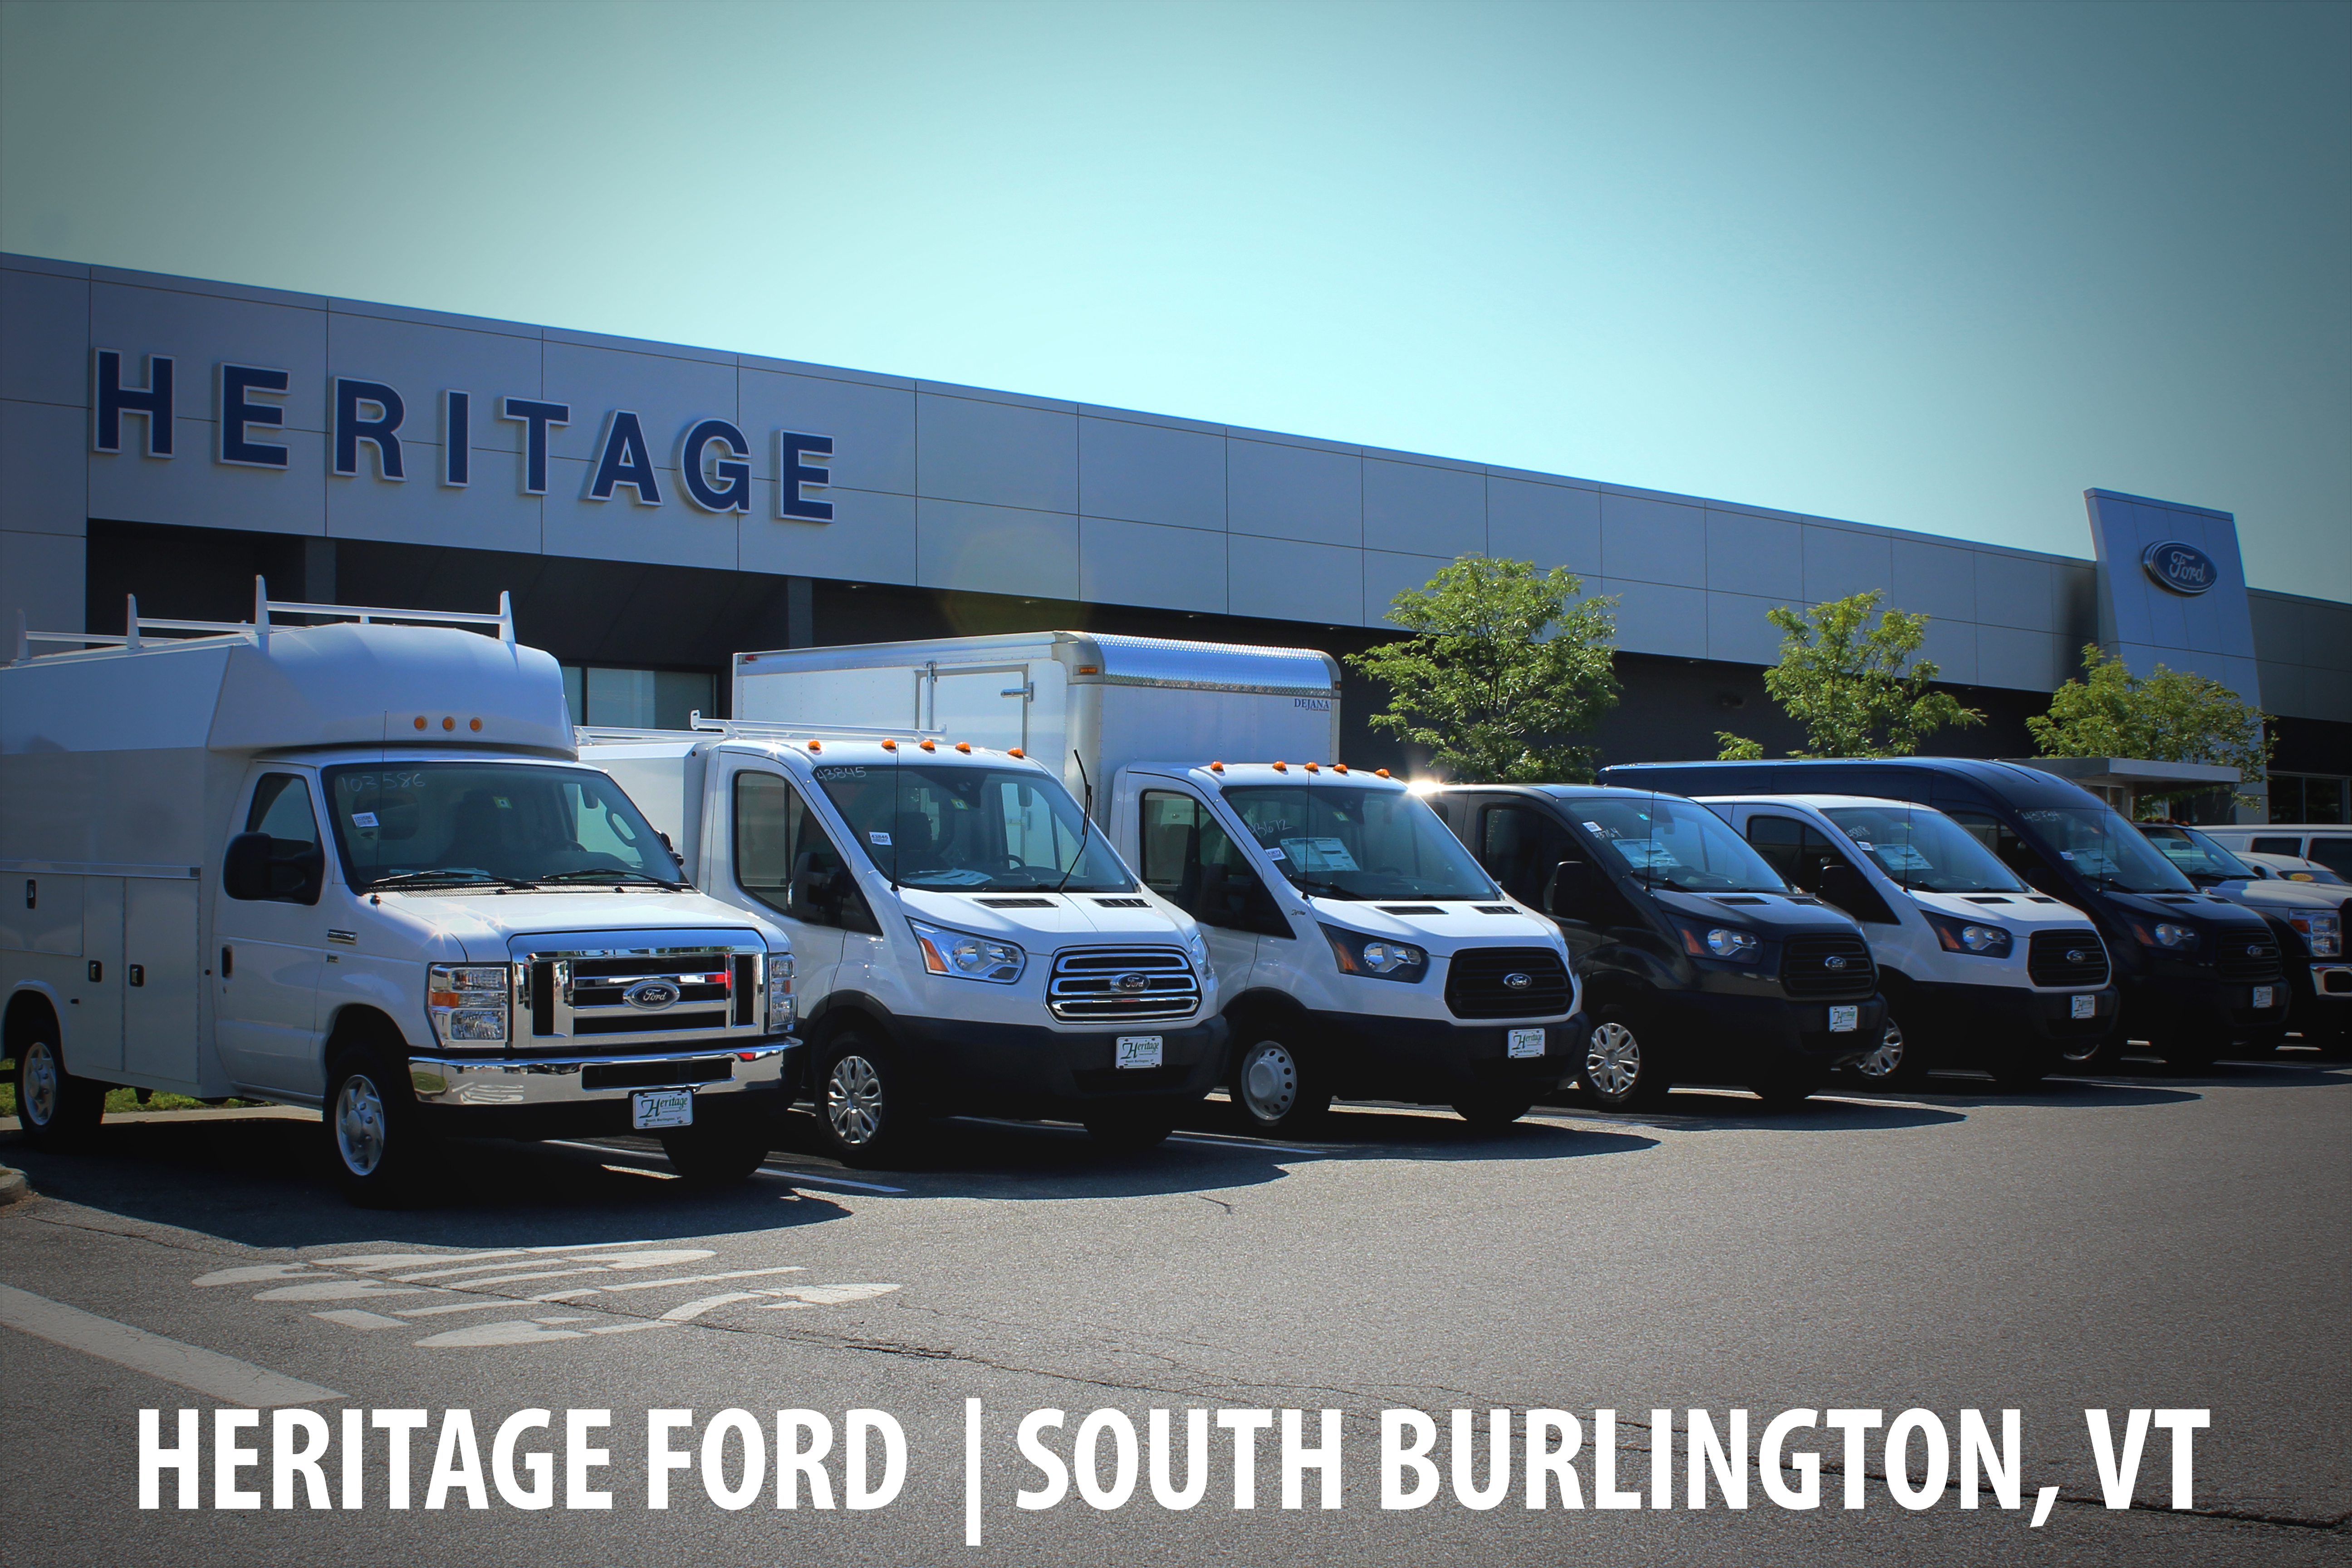 Heritage Ford & Ford Scion Toyota Dealership South Burlington VT Used Cars ... markmcfarlin.com